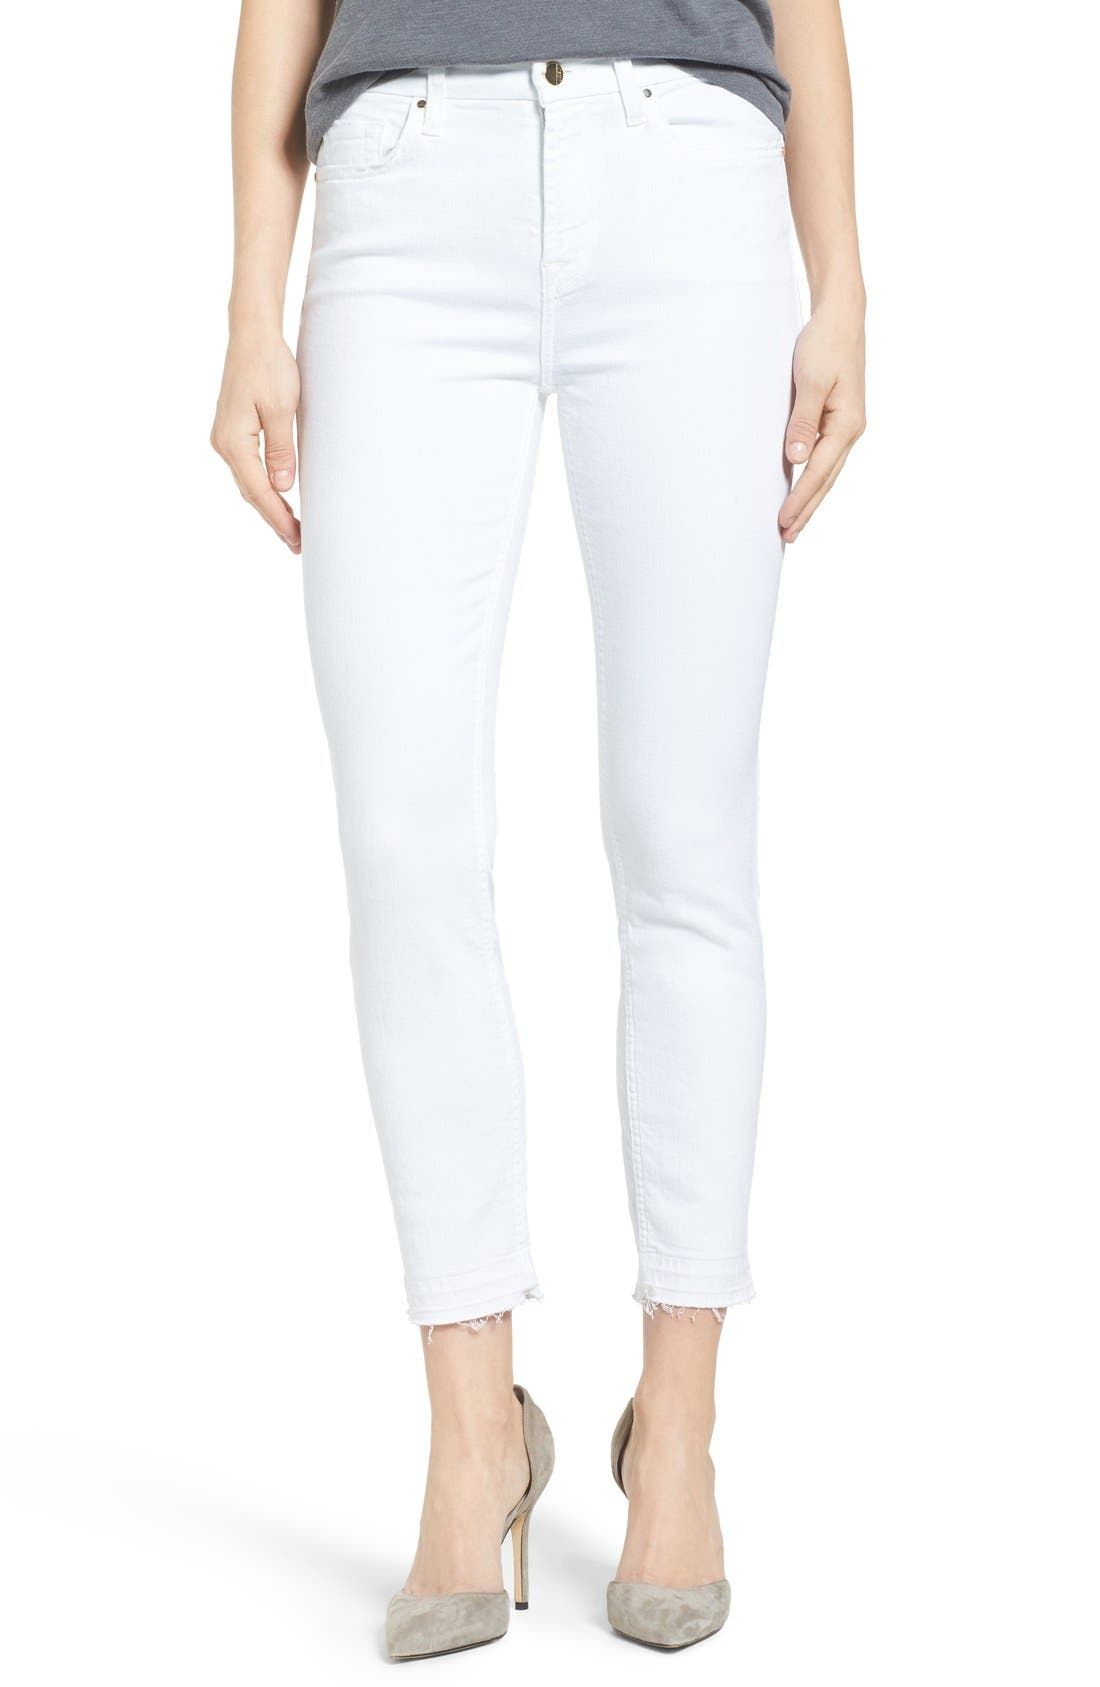 JEN7 BY 7 FOR ALL MANKIND, Release Hem Stretch Skinny Ankle Jeans, Main thumbnail 1, color, 101